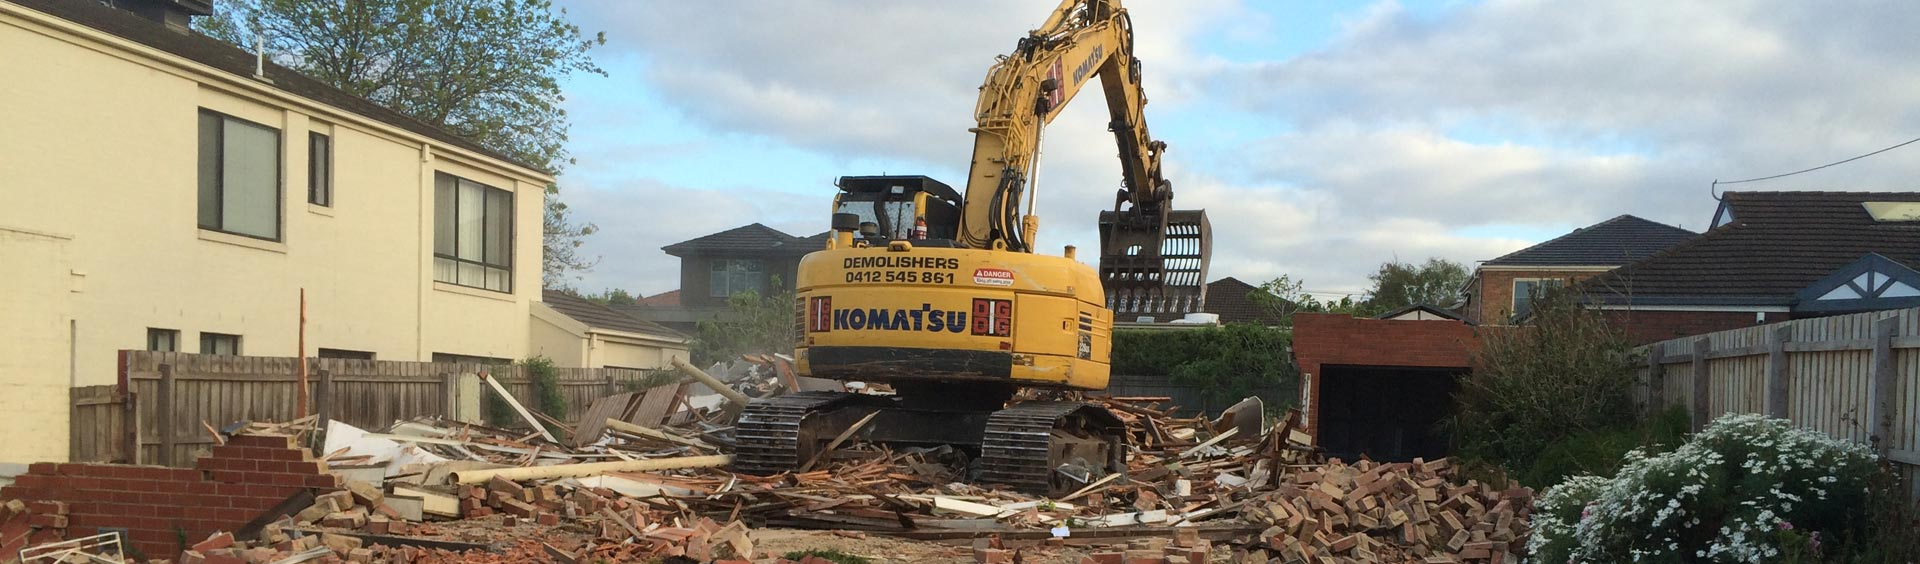 backhoe at house demolition site